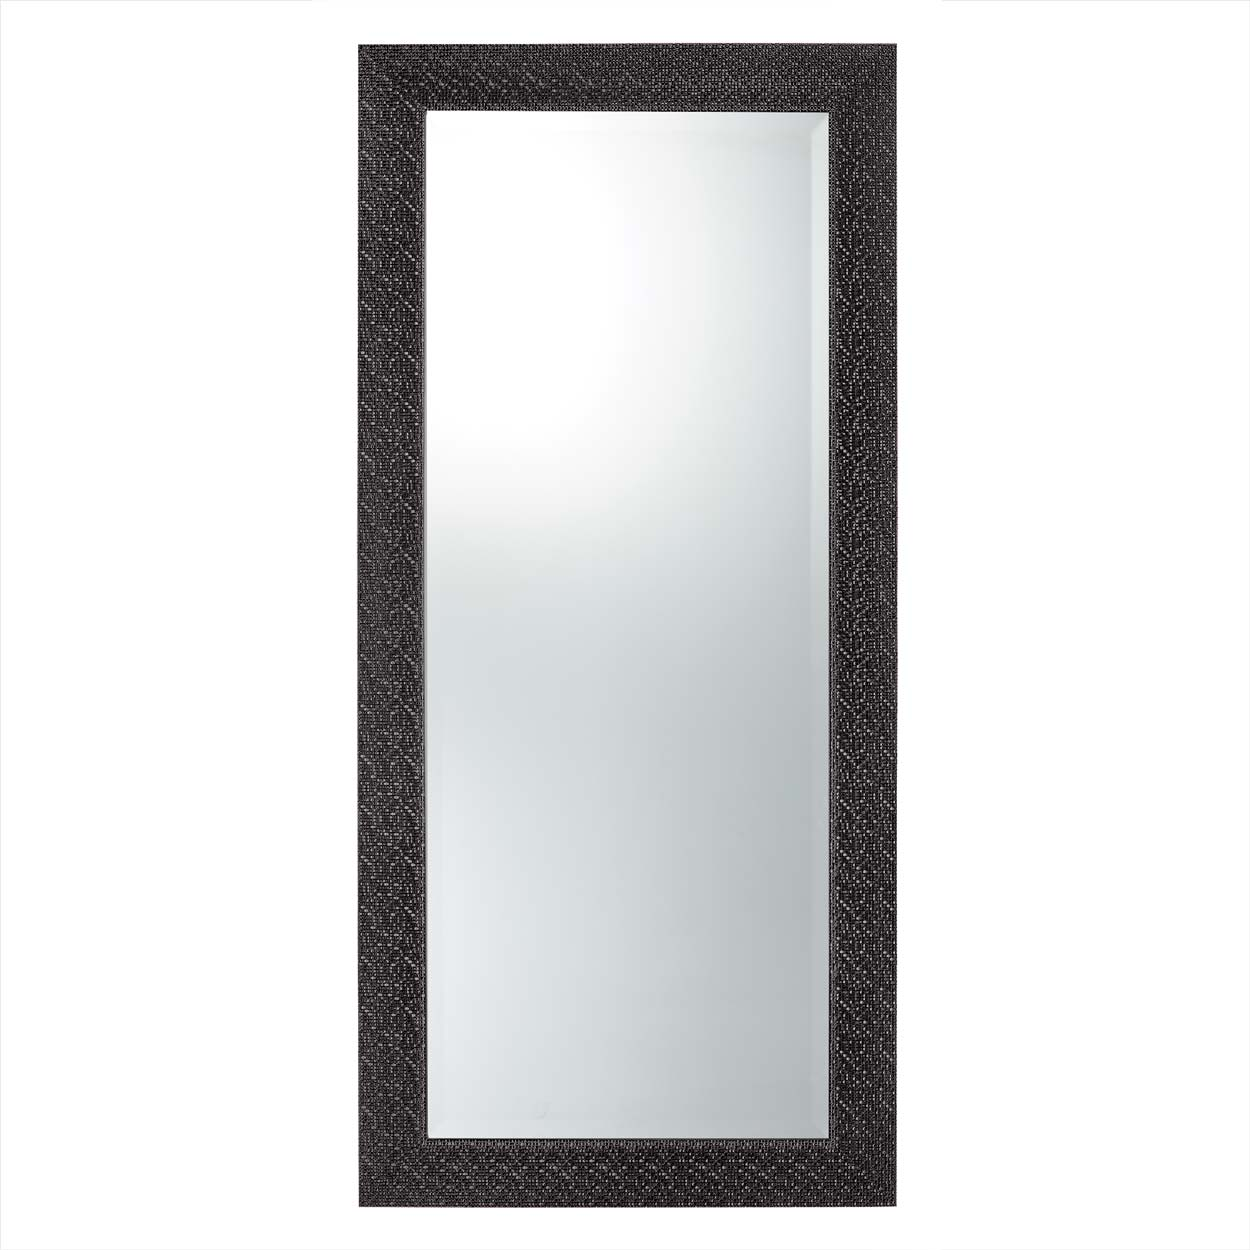 Diamond Framed Hair Salon Mirror  main product image